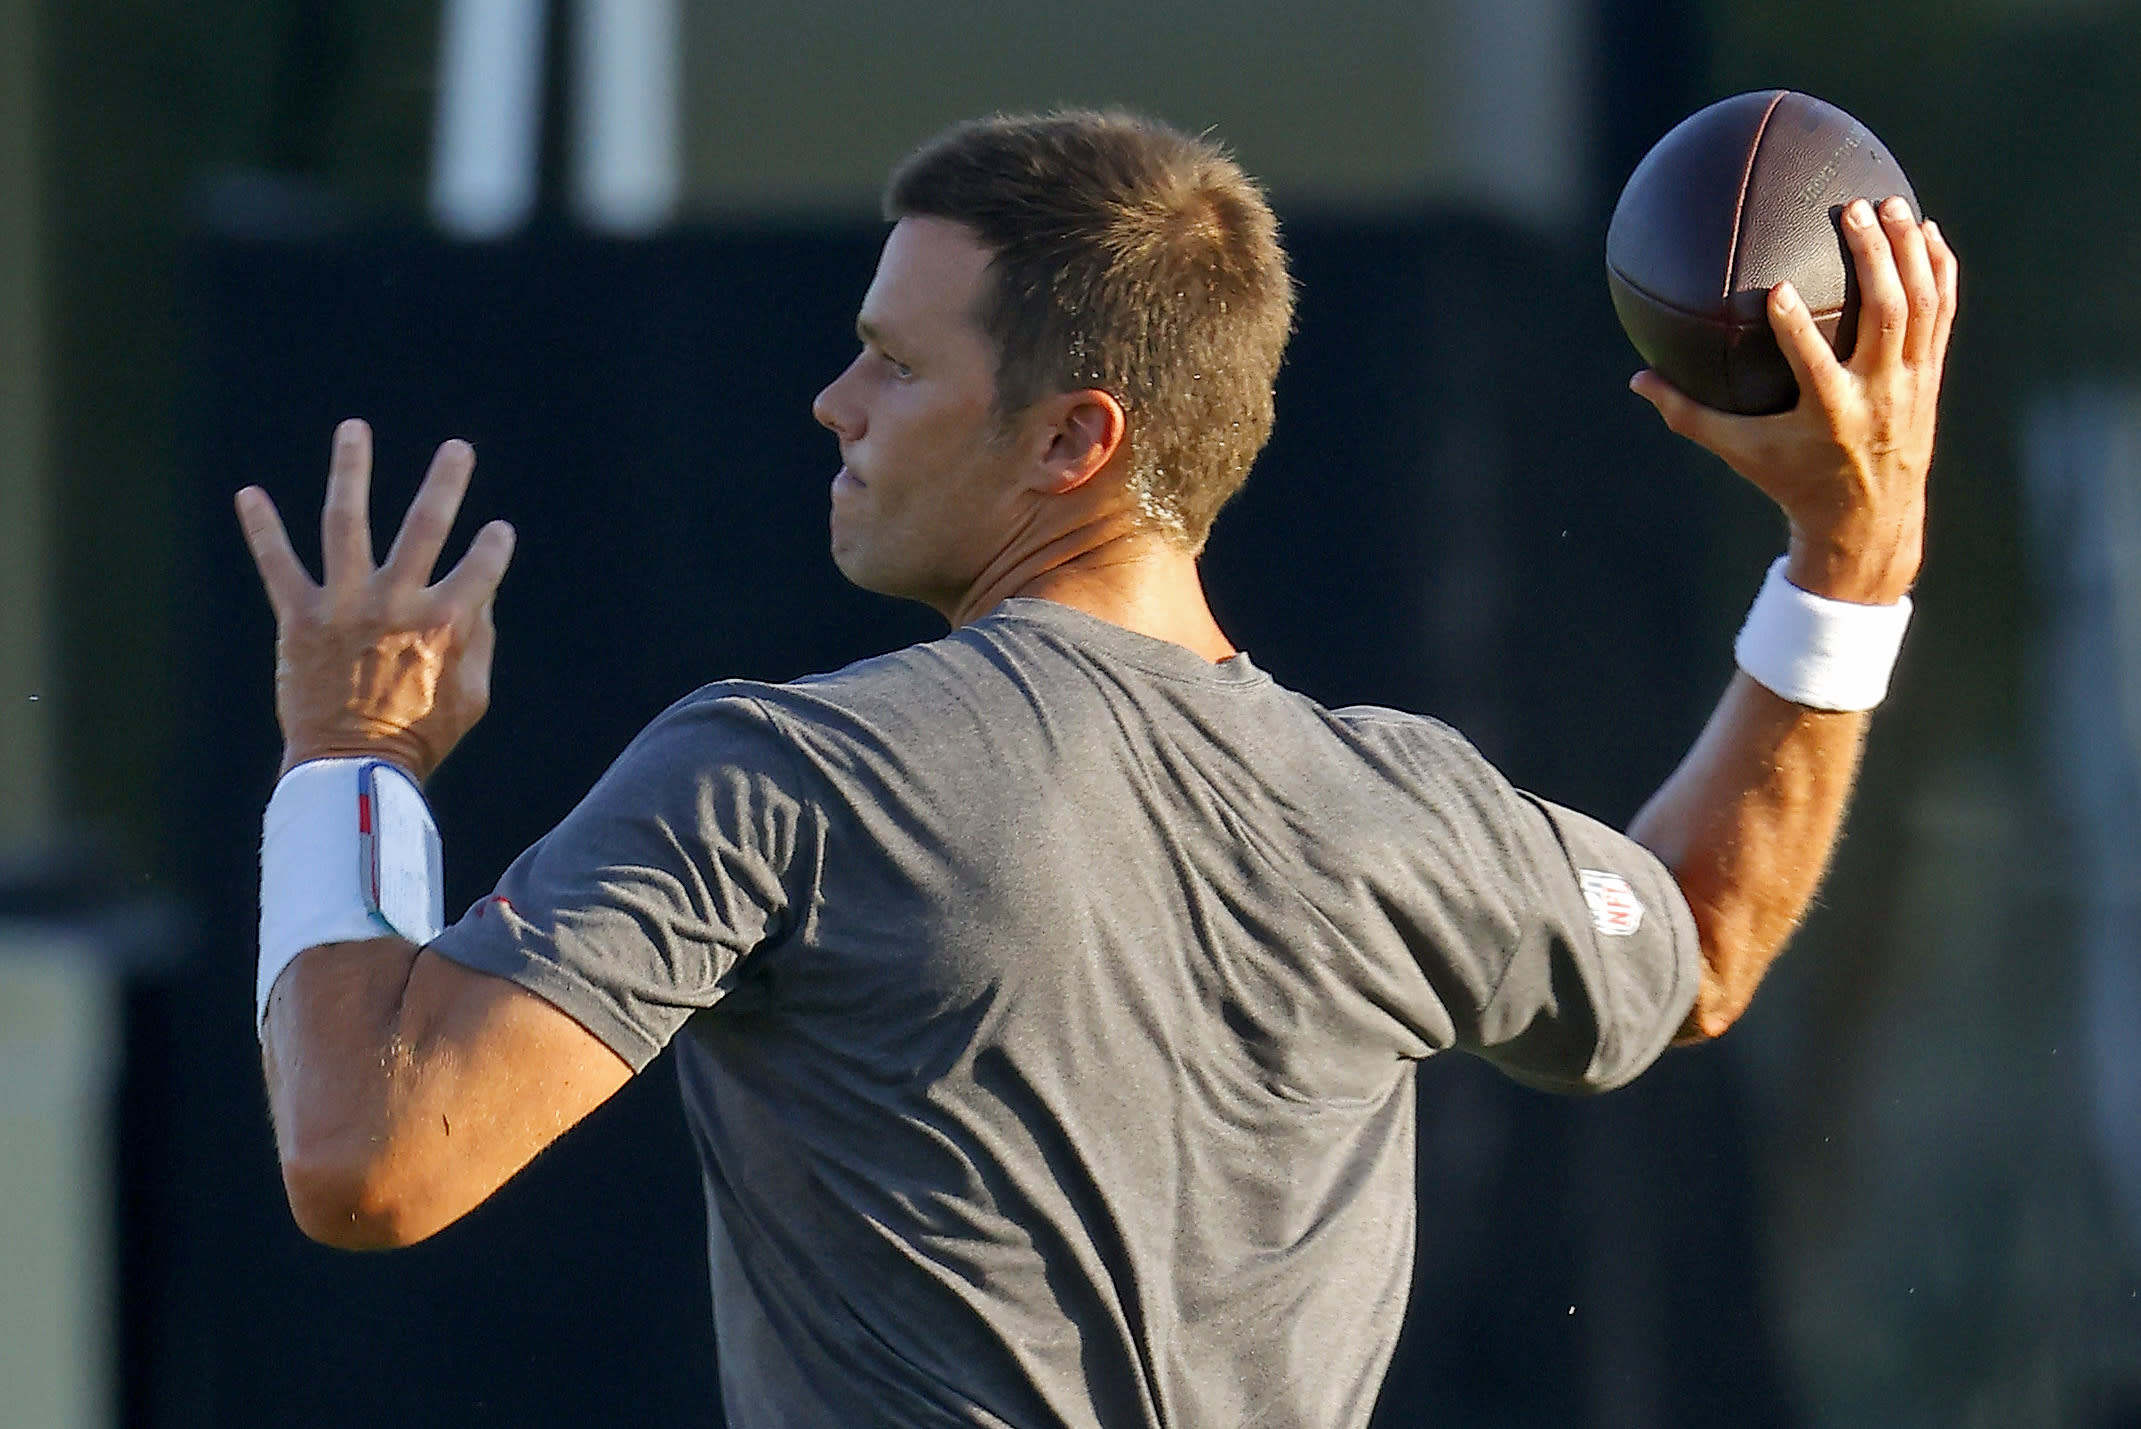 Here's why Tom Brady was 'cussed out' at Buccaneers practice